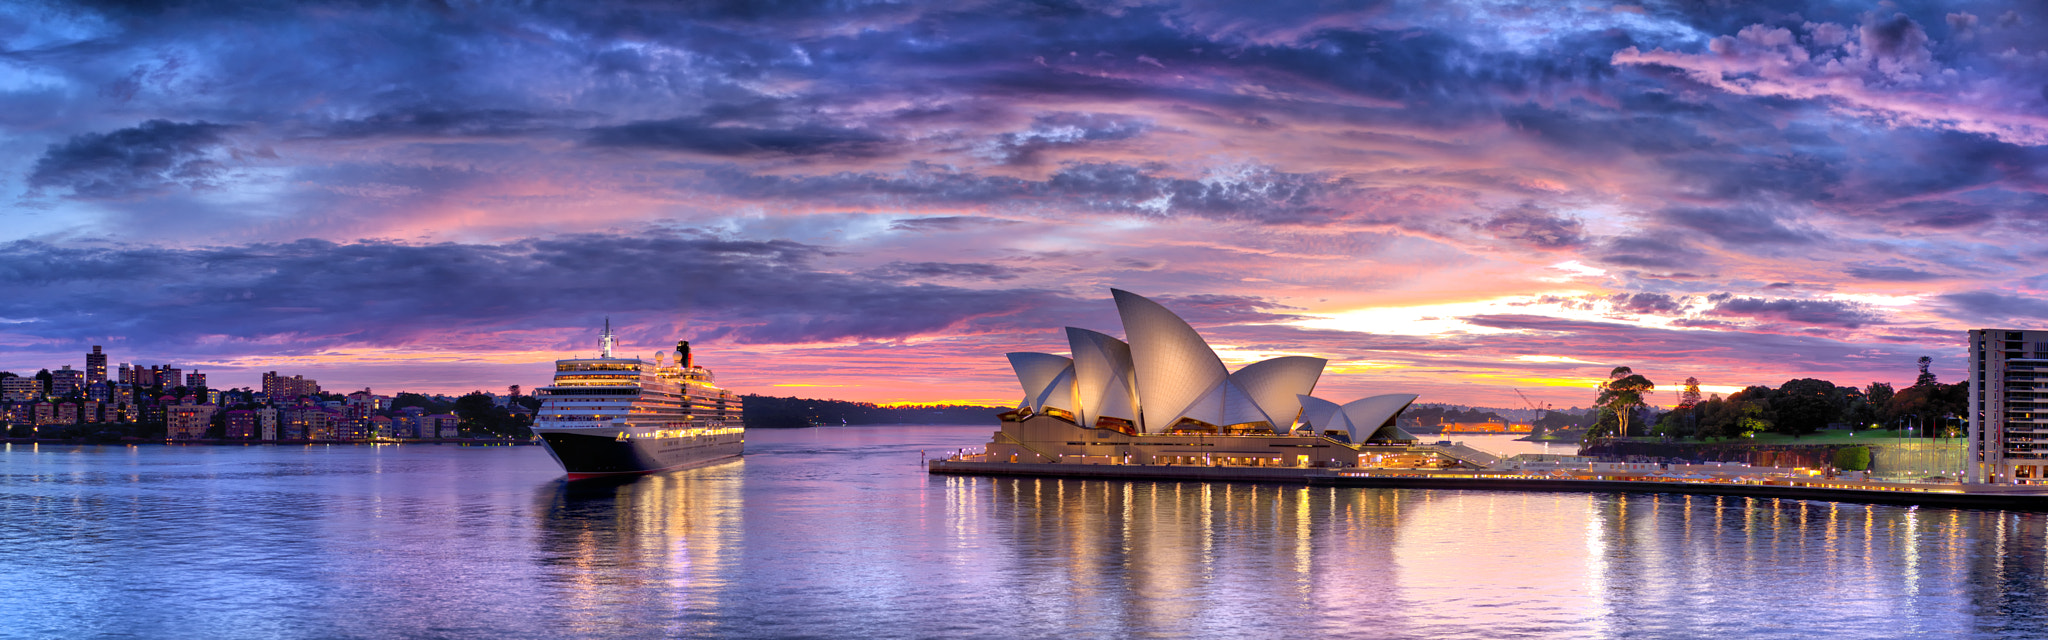 Photograph Perfect Strangers by Timothy Poulton on 500px